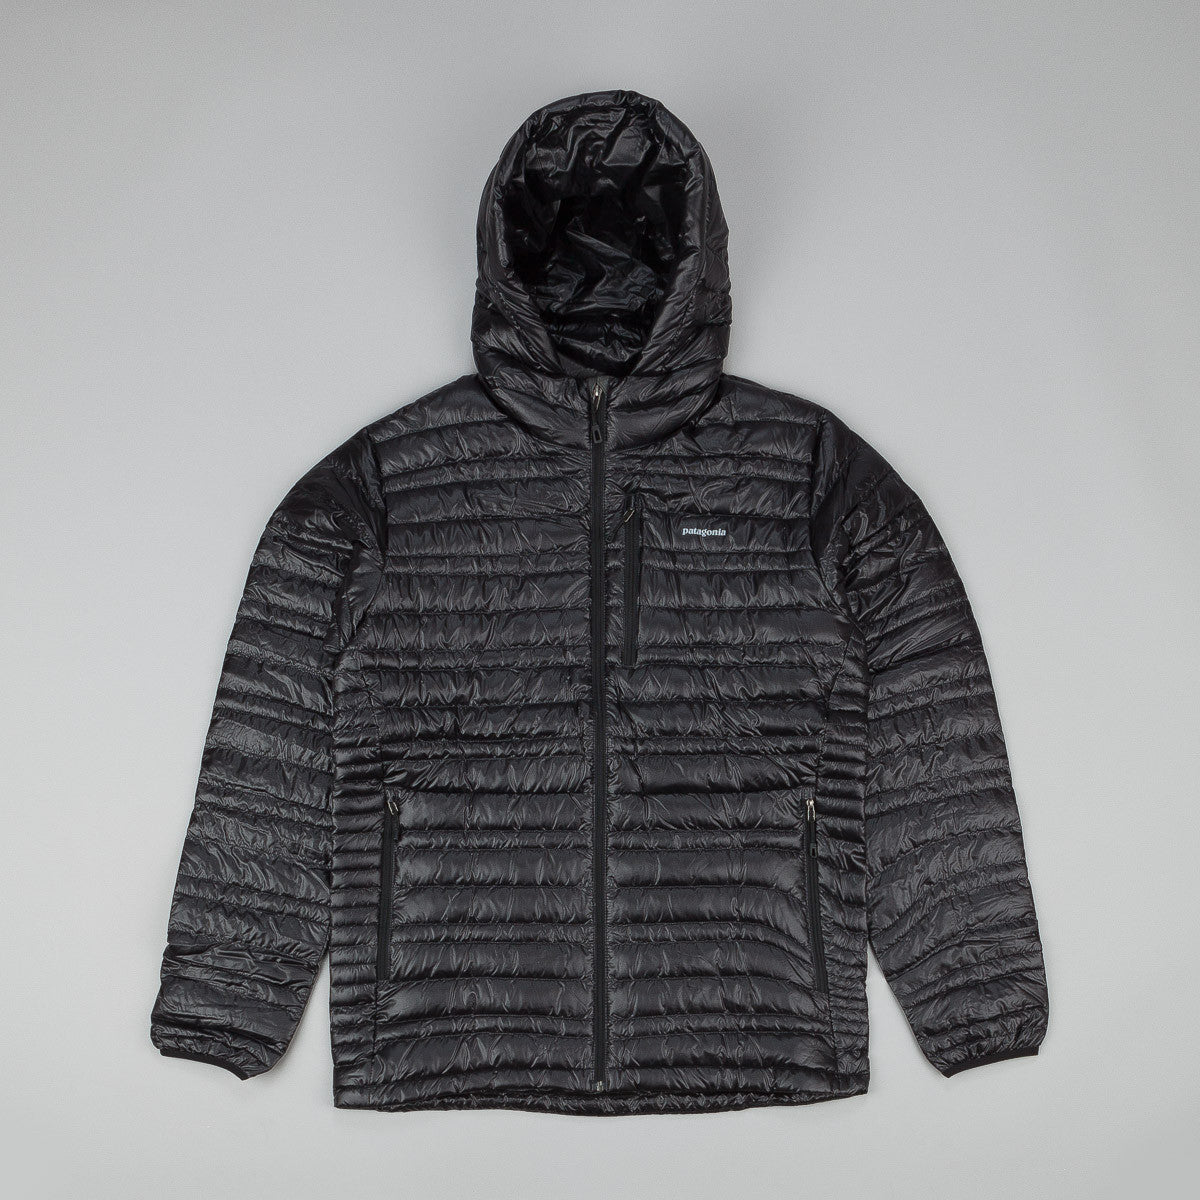 Patagonia Ultralight Down Sweater Hooded Jacket